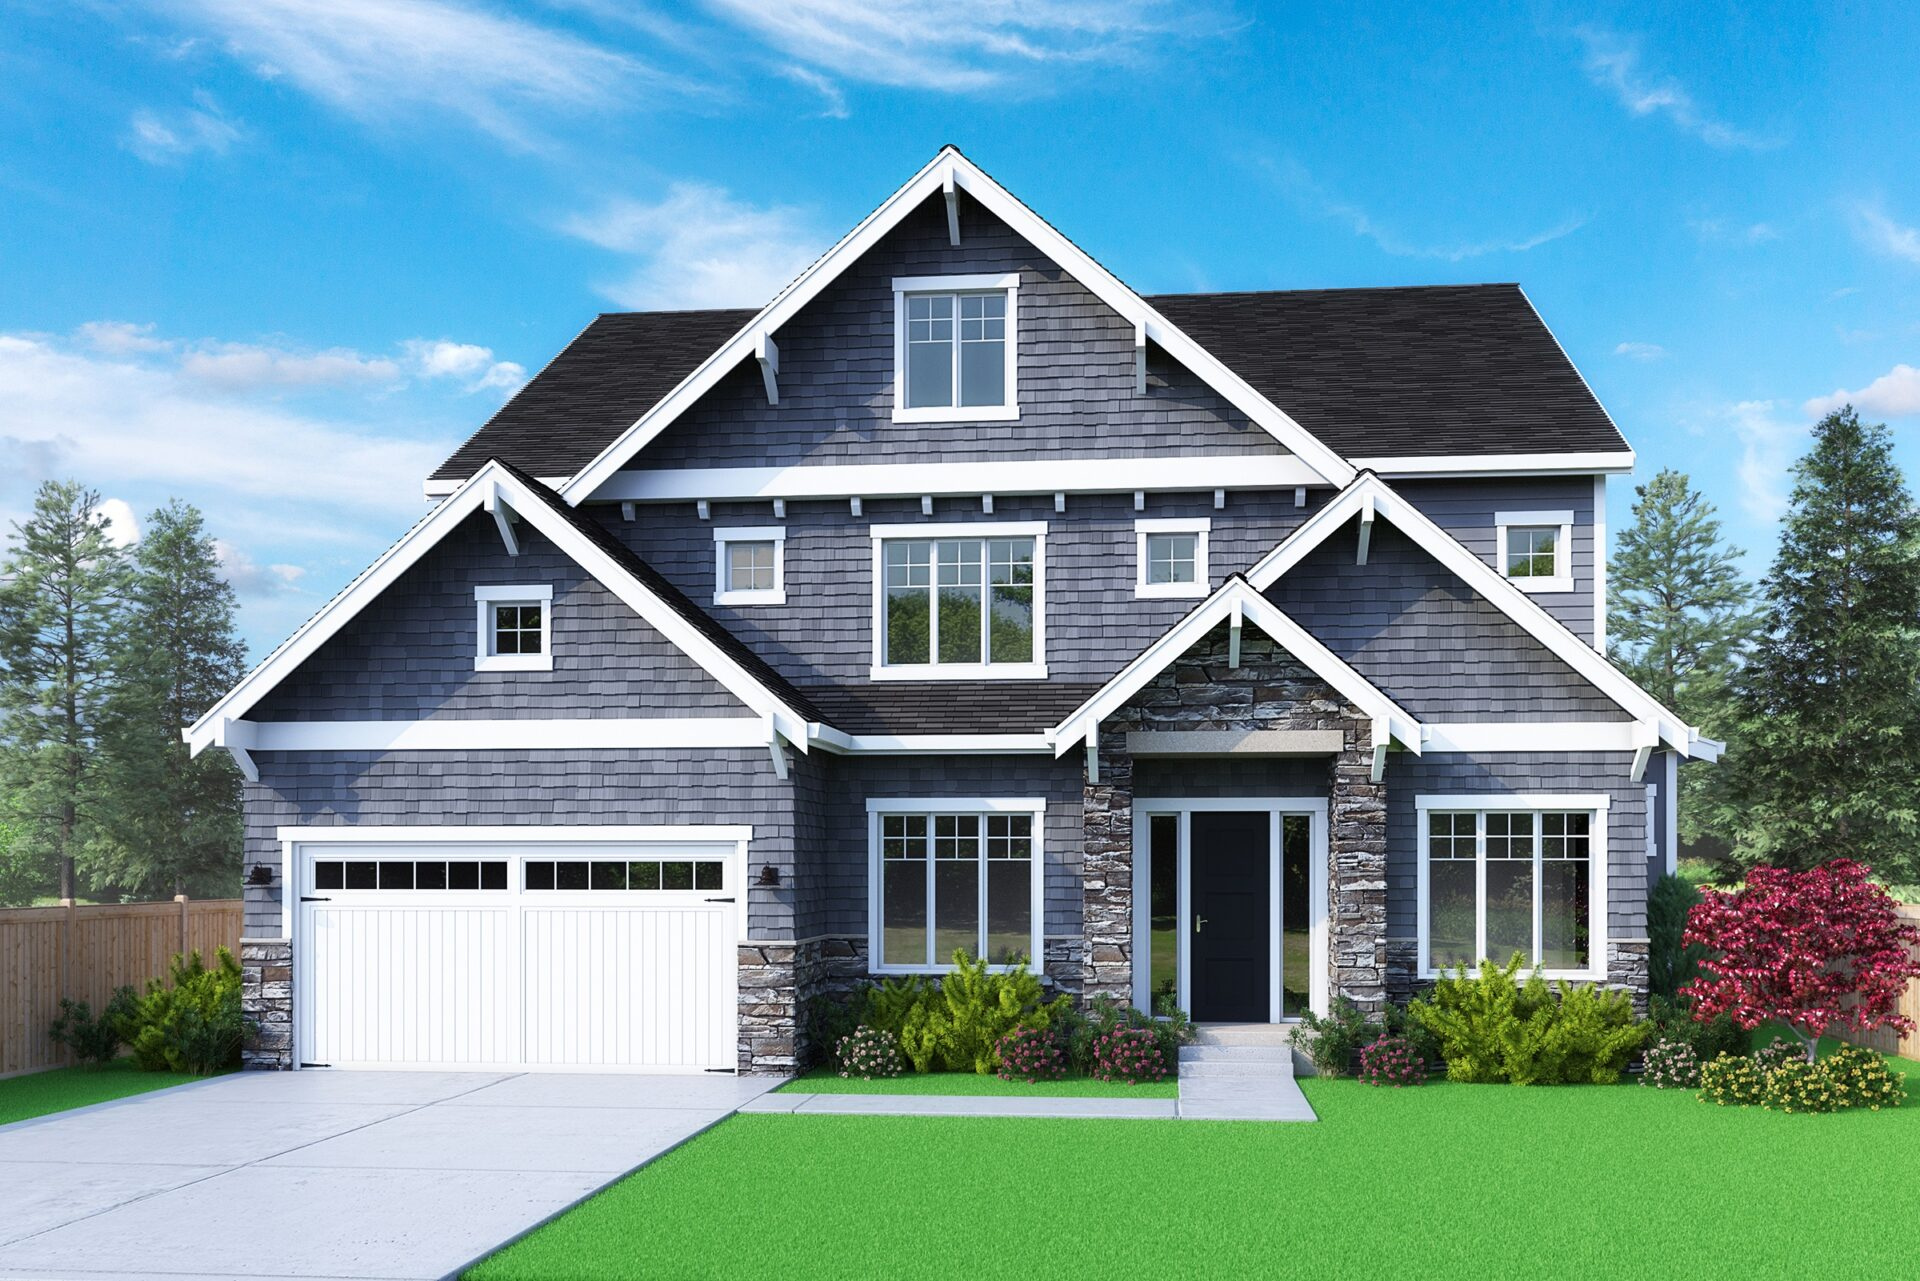 View our new luxury home construction on 4121 152nd Ave SE in Bellevue, WA from MN Custom Homes